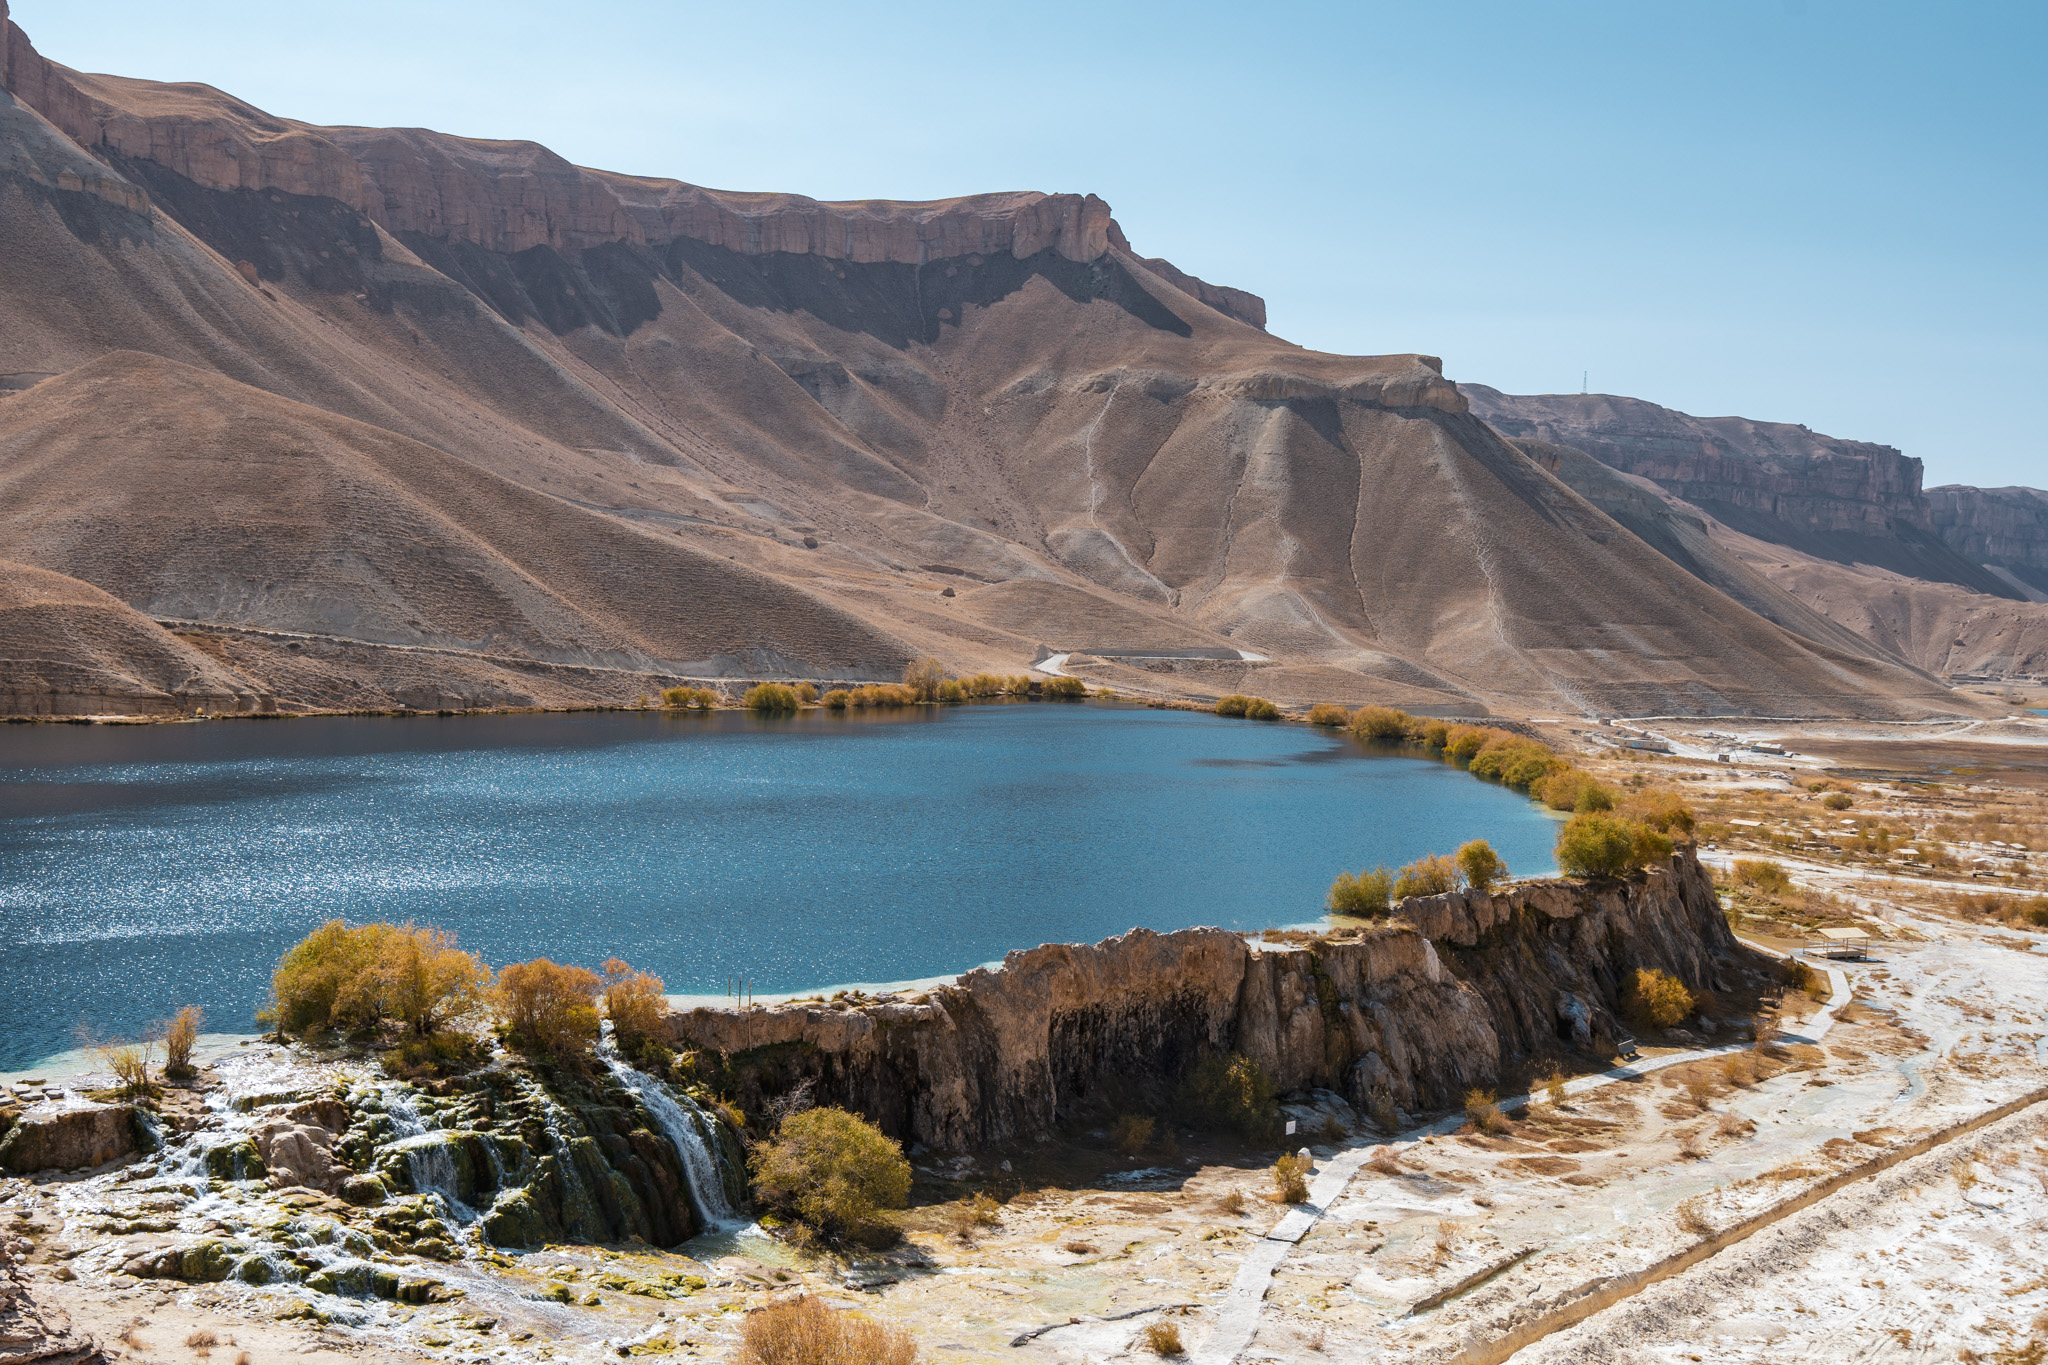 One of the blue lakes of Band-e-Amir National Park